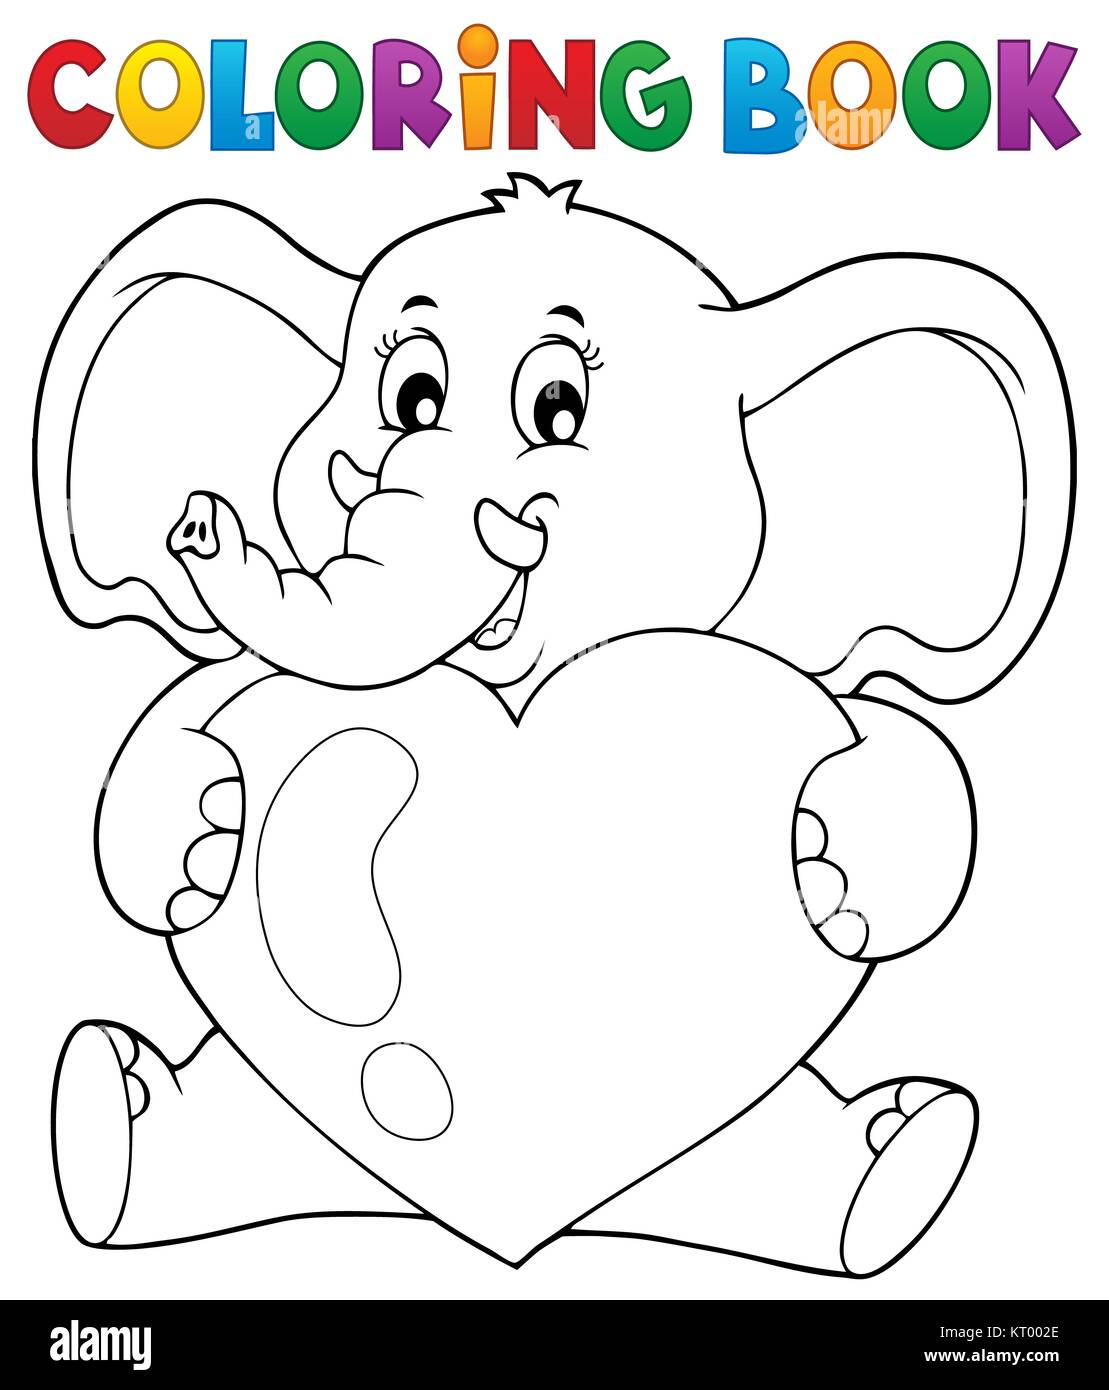 Coloring book elephant holding heart Stock Photo: 169645126 - Alamy